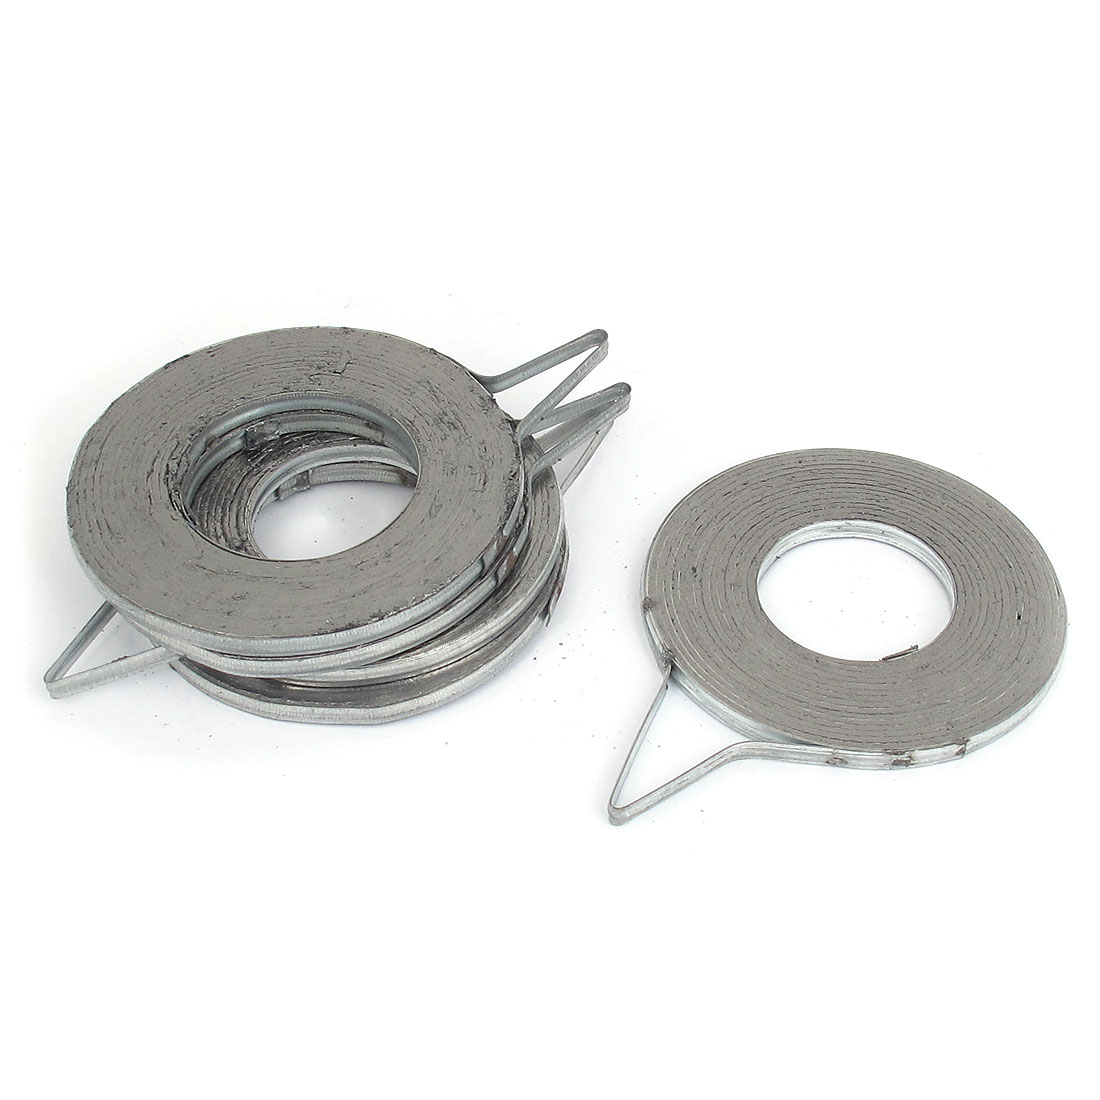 Heat Exchanger Spiral Sealing Metal Seal Gasket 5 Pcs